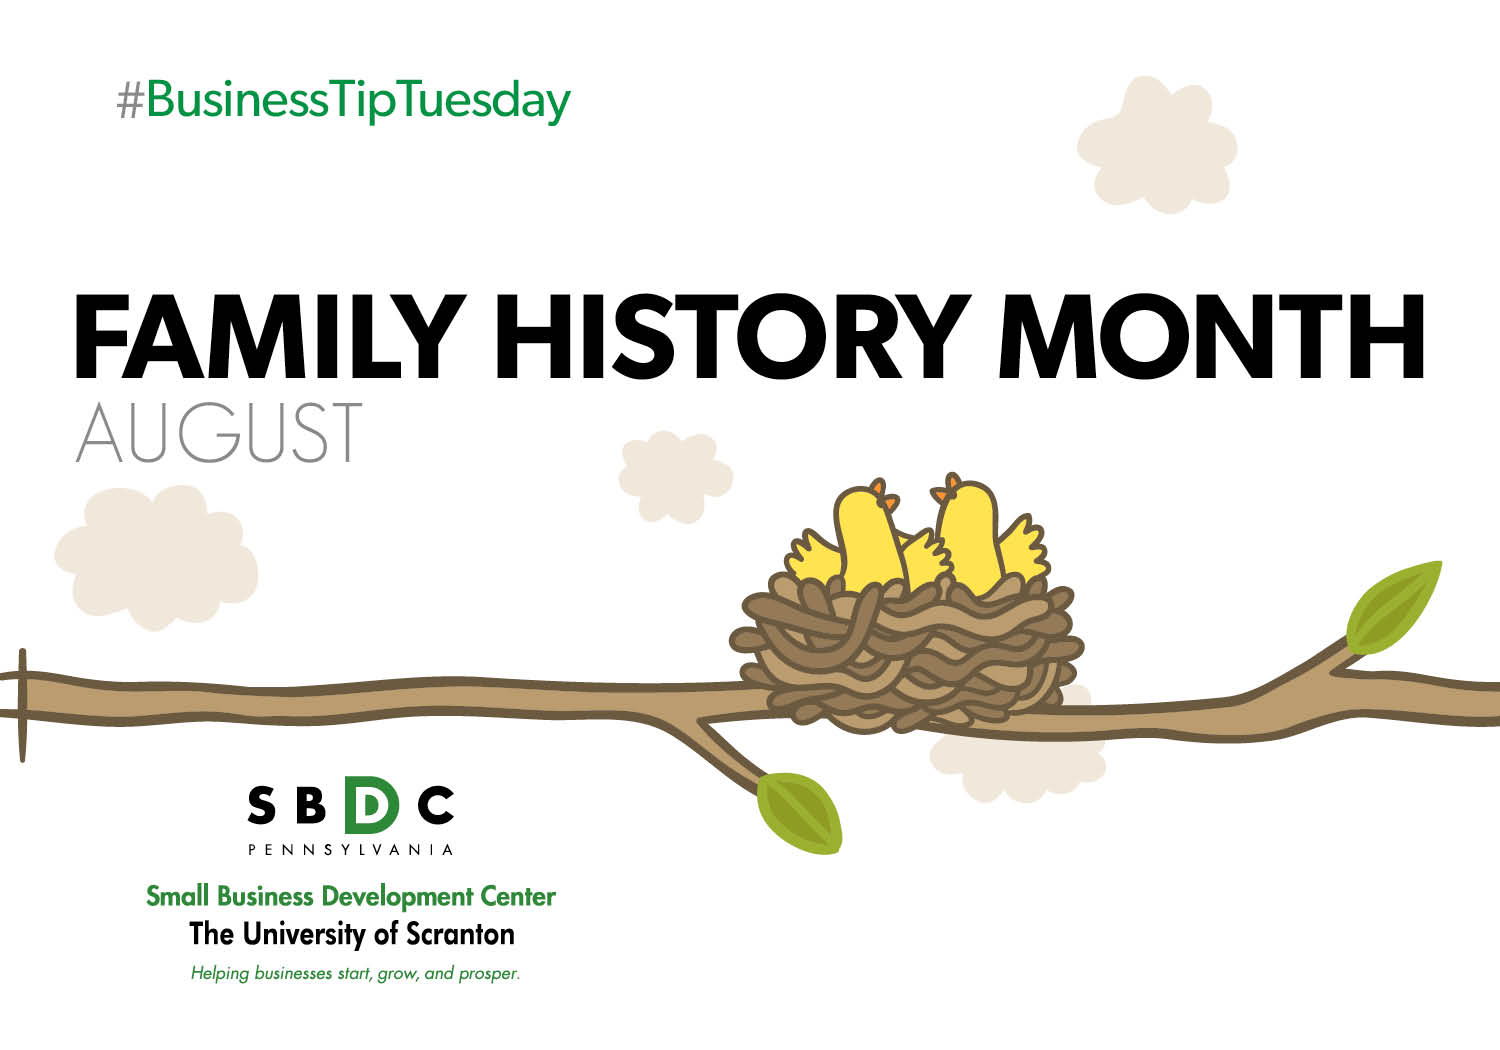 #BusinessTipTuesday – Family History Month